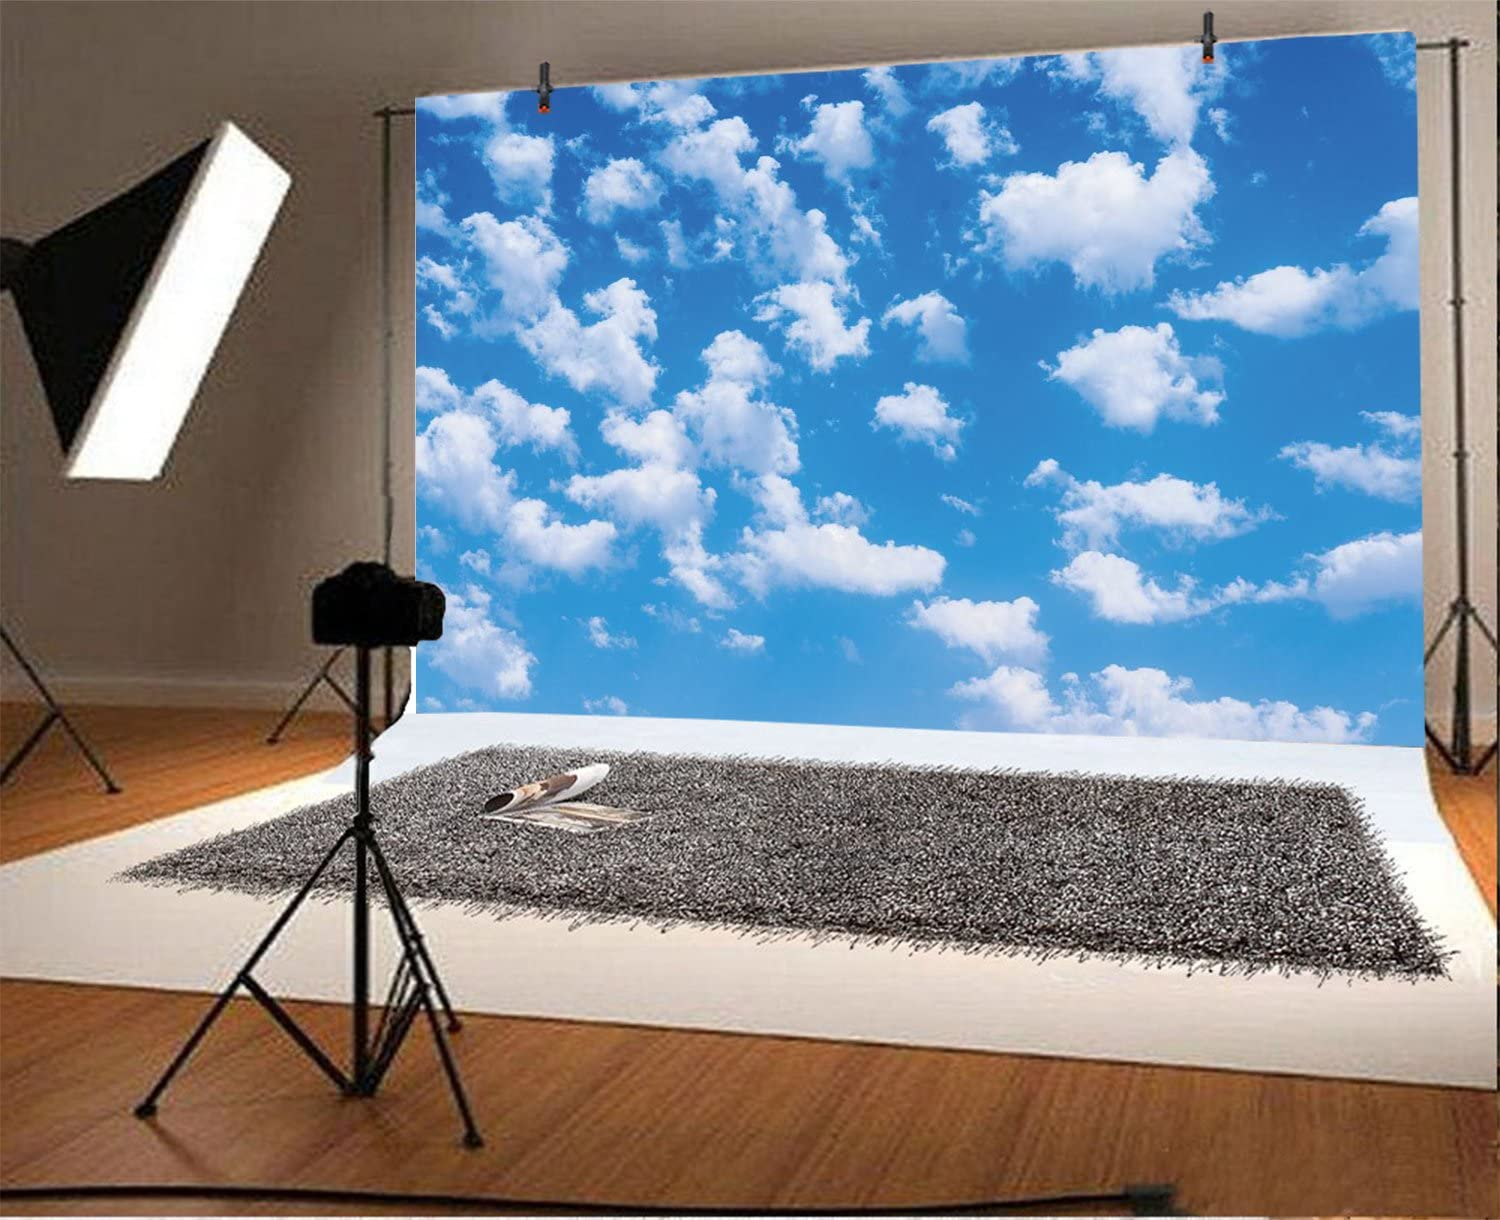 6x8 FT Backdrop Photographers,Fluffy Cloud Skyline Like Marble Motif with Grunge and Retro Features Art Image Print Background for Photography Kids Adult Photo Booth Video Shoot Vinyl Studio Props